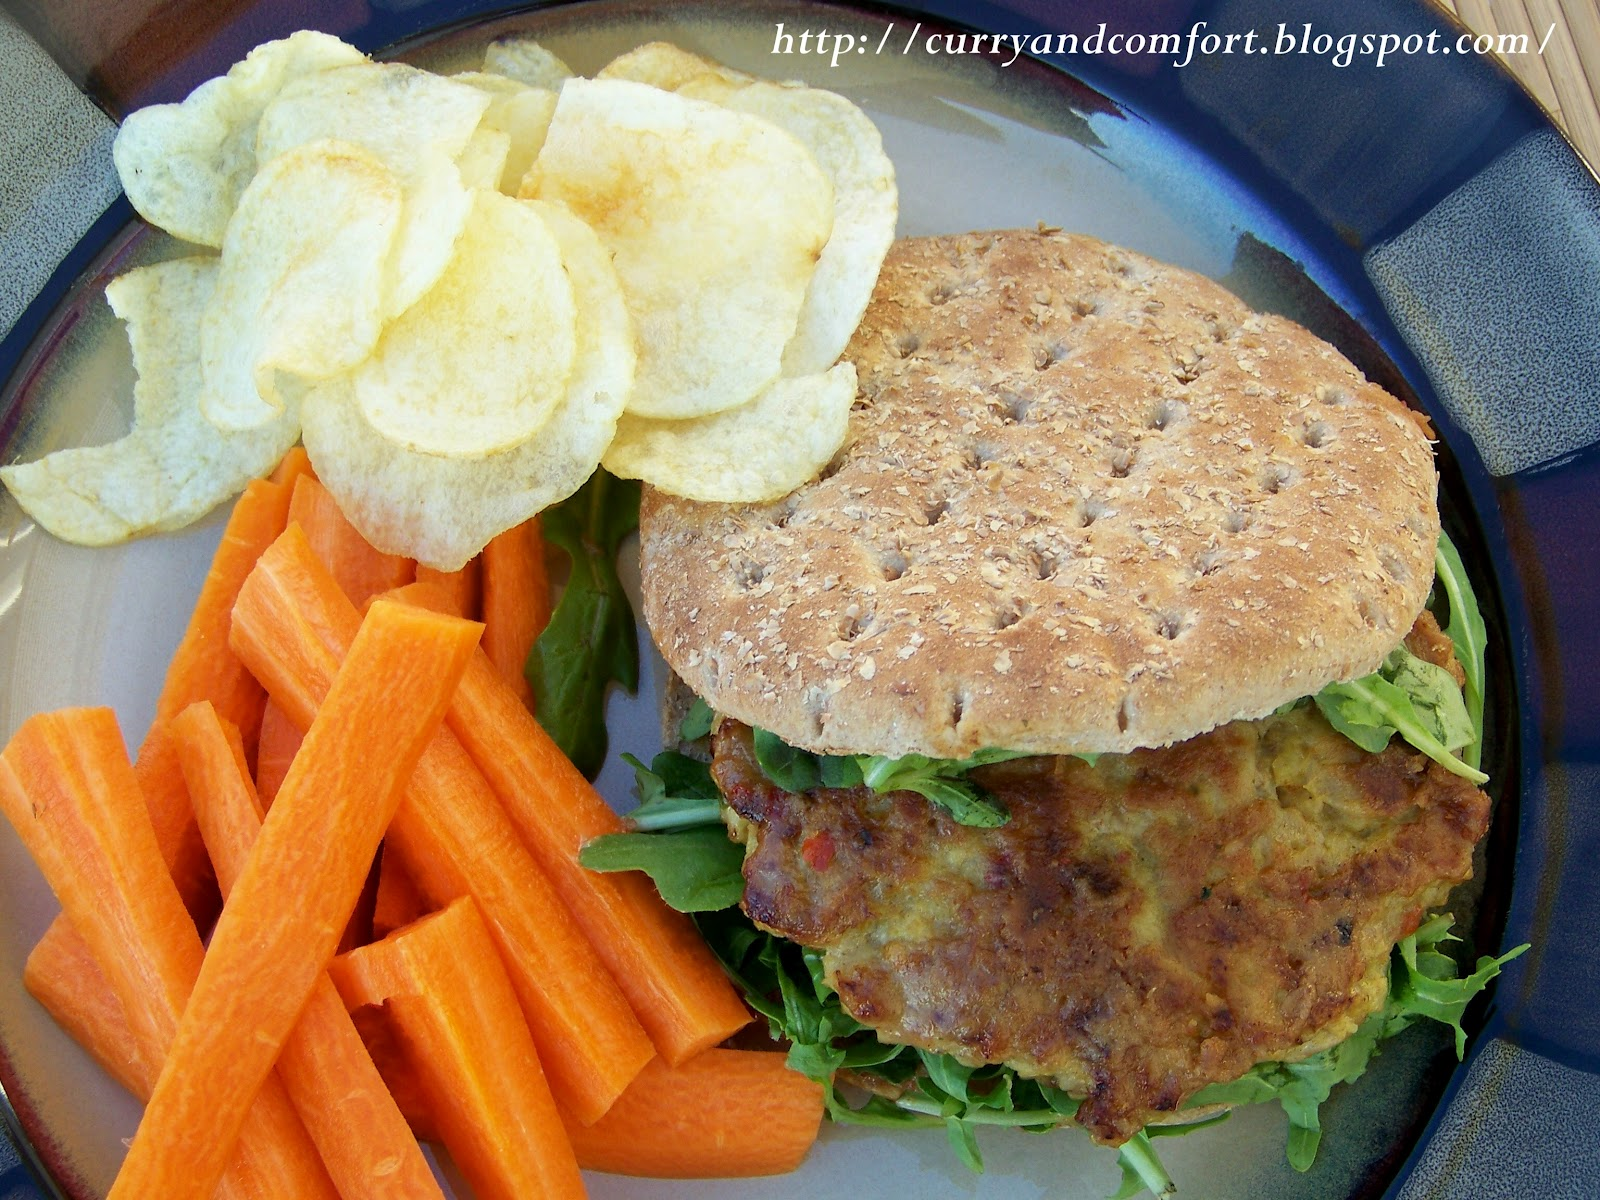 Curry and Comfort: Satay Chicken Burger